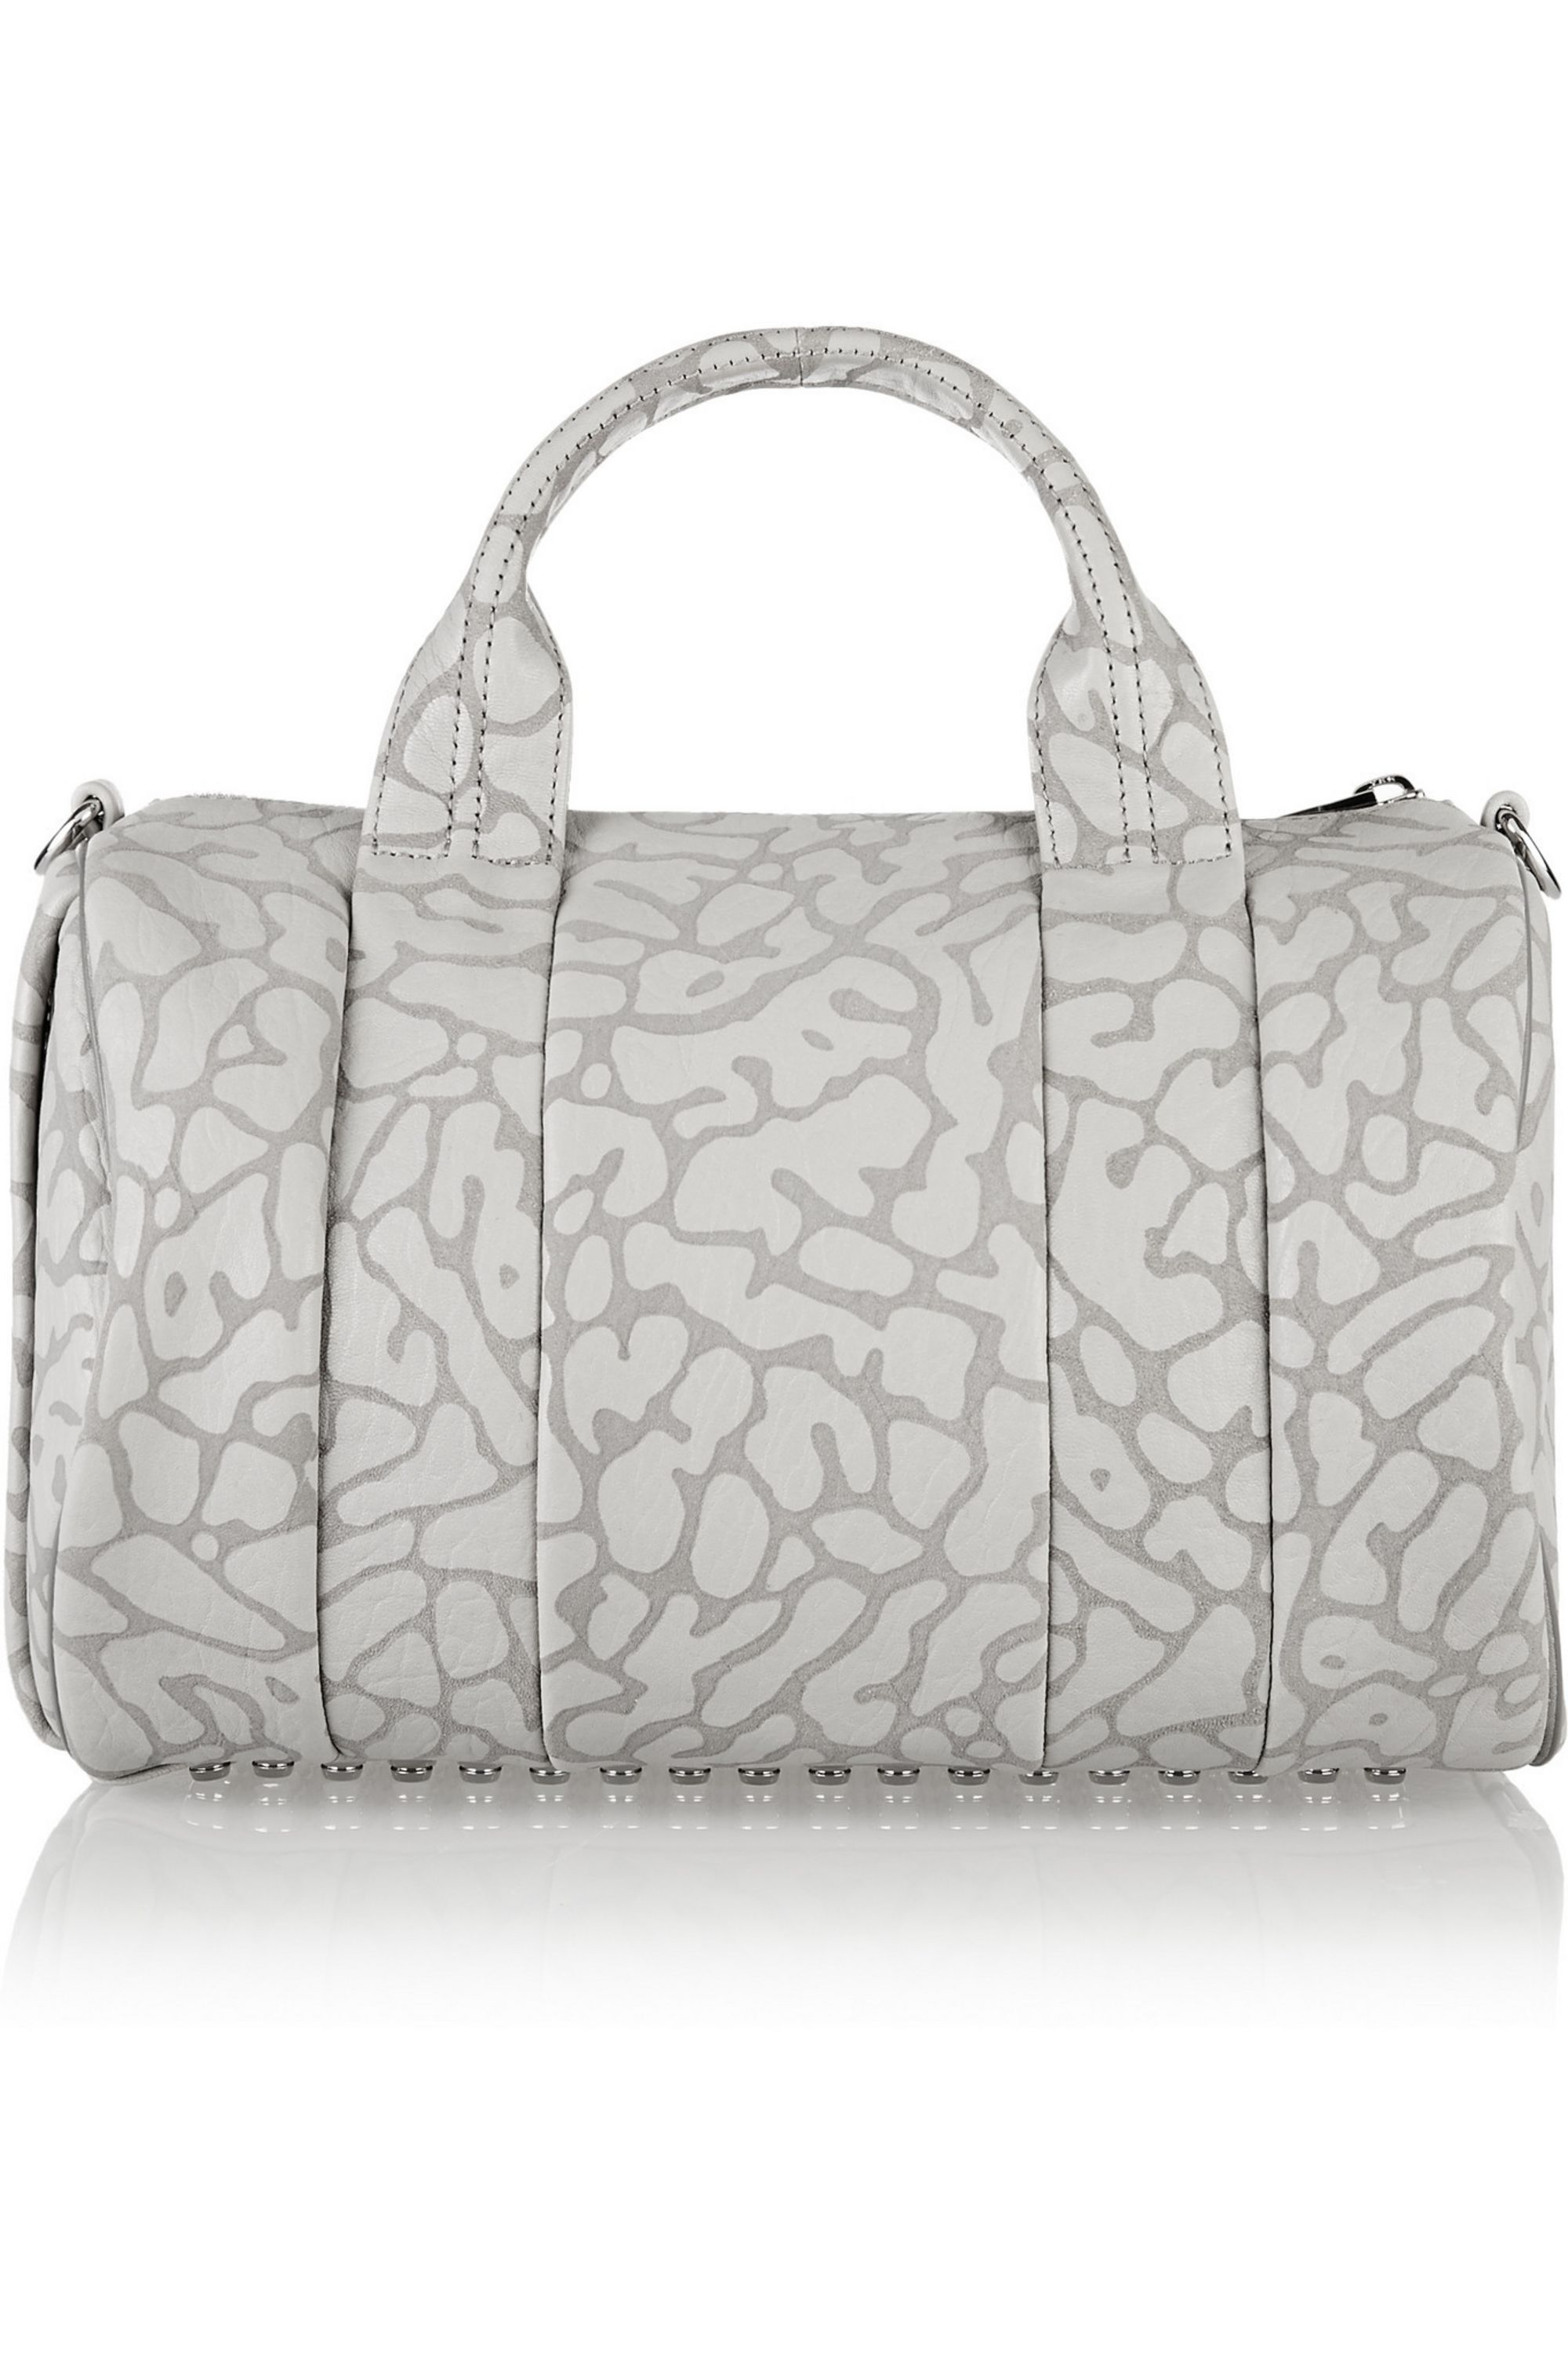 Alexander Wang The Rocco leopard-print leather tote